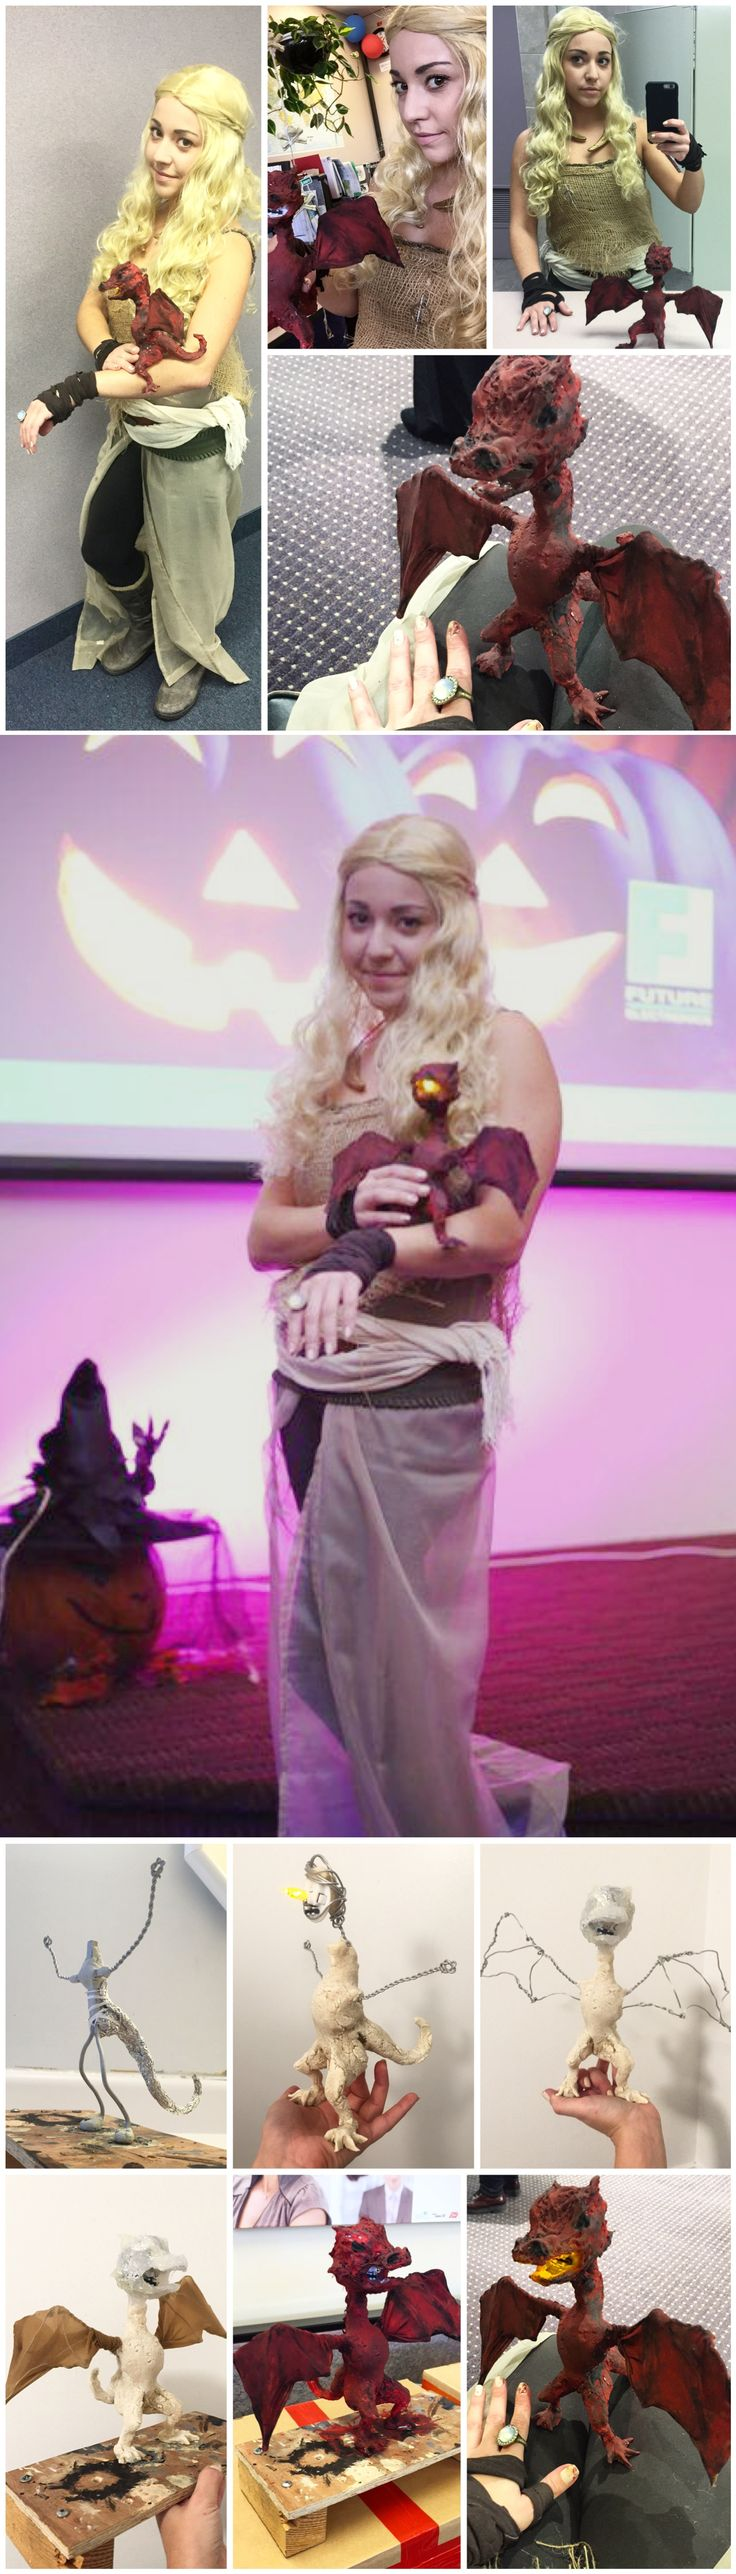 DIY Khaleesi / Mother of Dragons / Daenerys Targaryen from Game of Thrones costume on a budget for Halloween. Handmade dragon puppet; from the armature to the led lit glowing head! Everything was put together with items found around the house and leftover craft materials.The only pieces I bought was the wig for 20$ and a curtain & tea light from the dollar store!